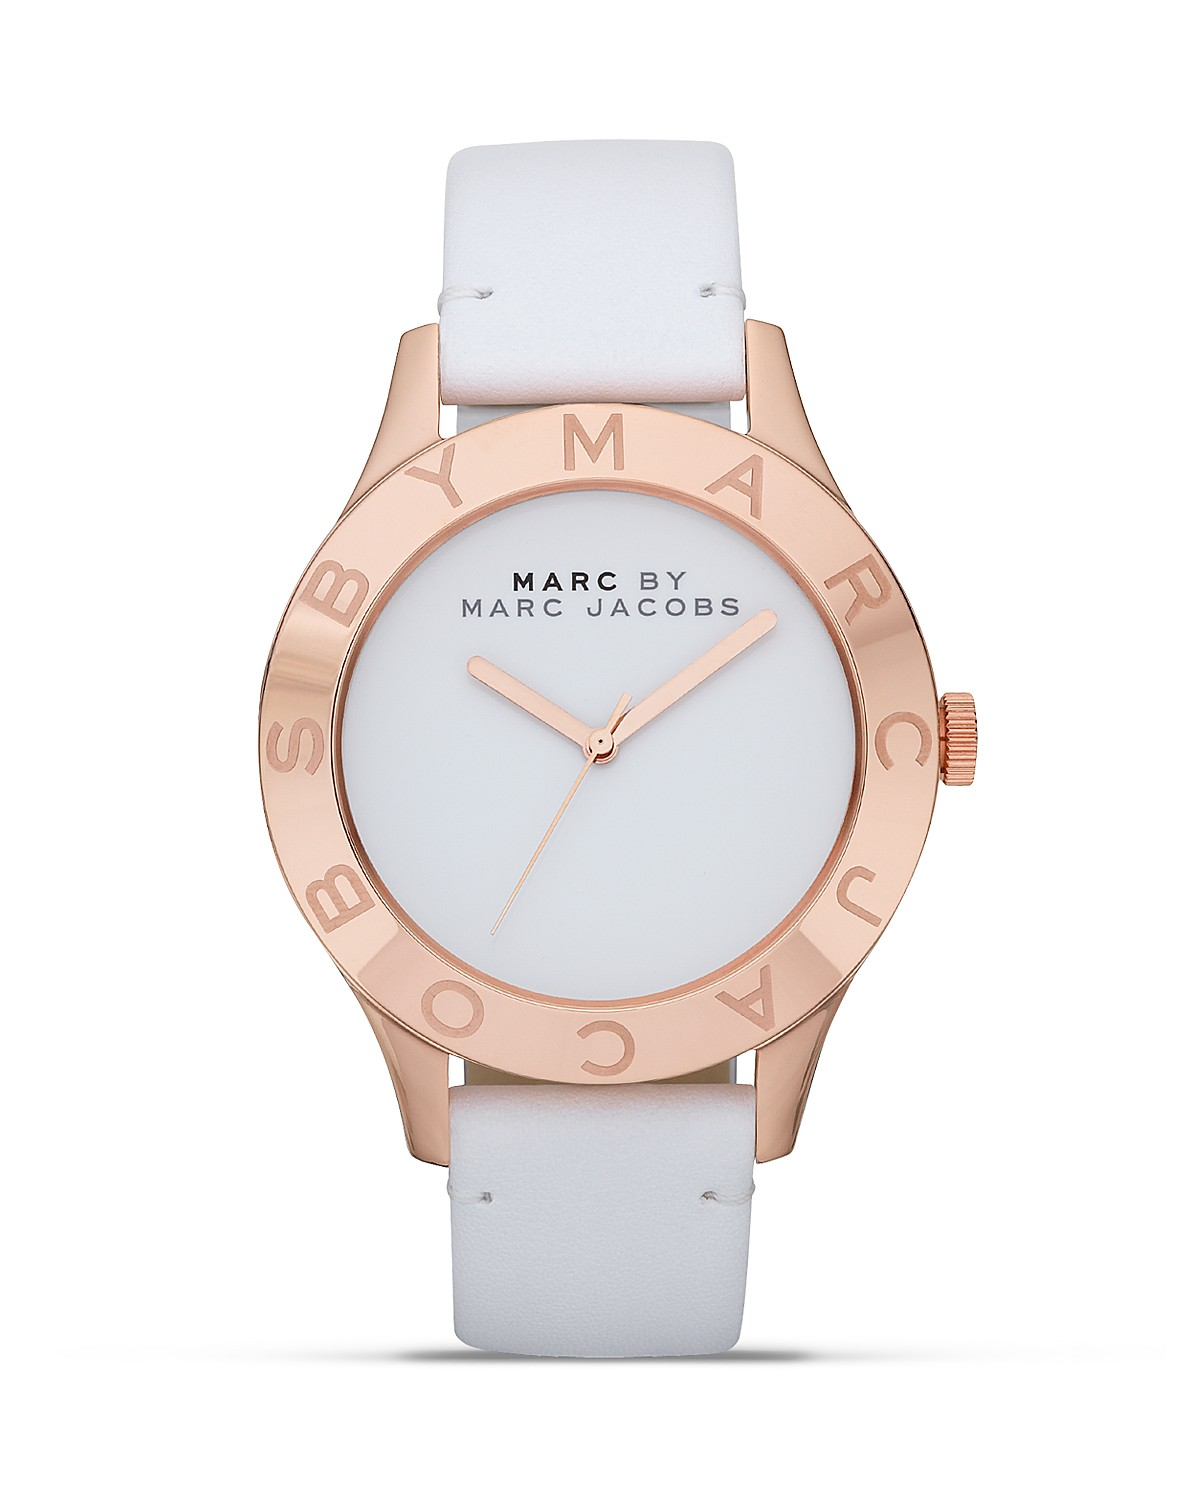 MARC BY MARC JACOBS New Blade Etched Logo Watch, 40mm | Bloomingdale's